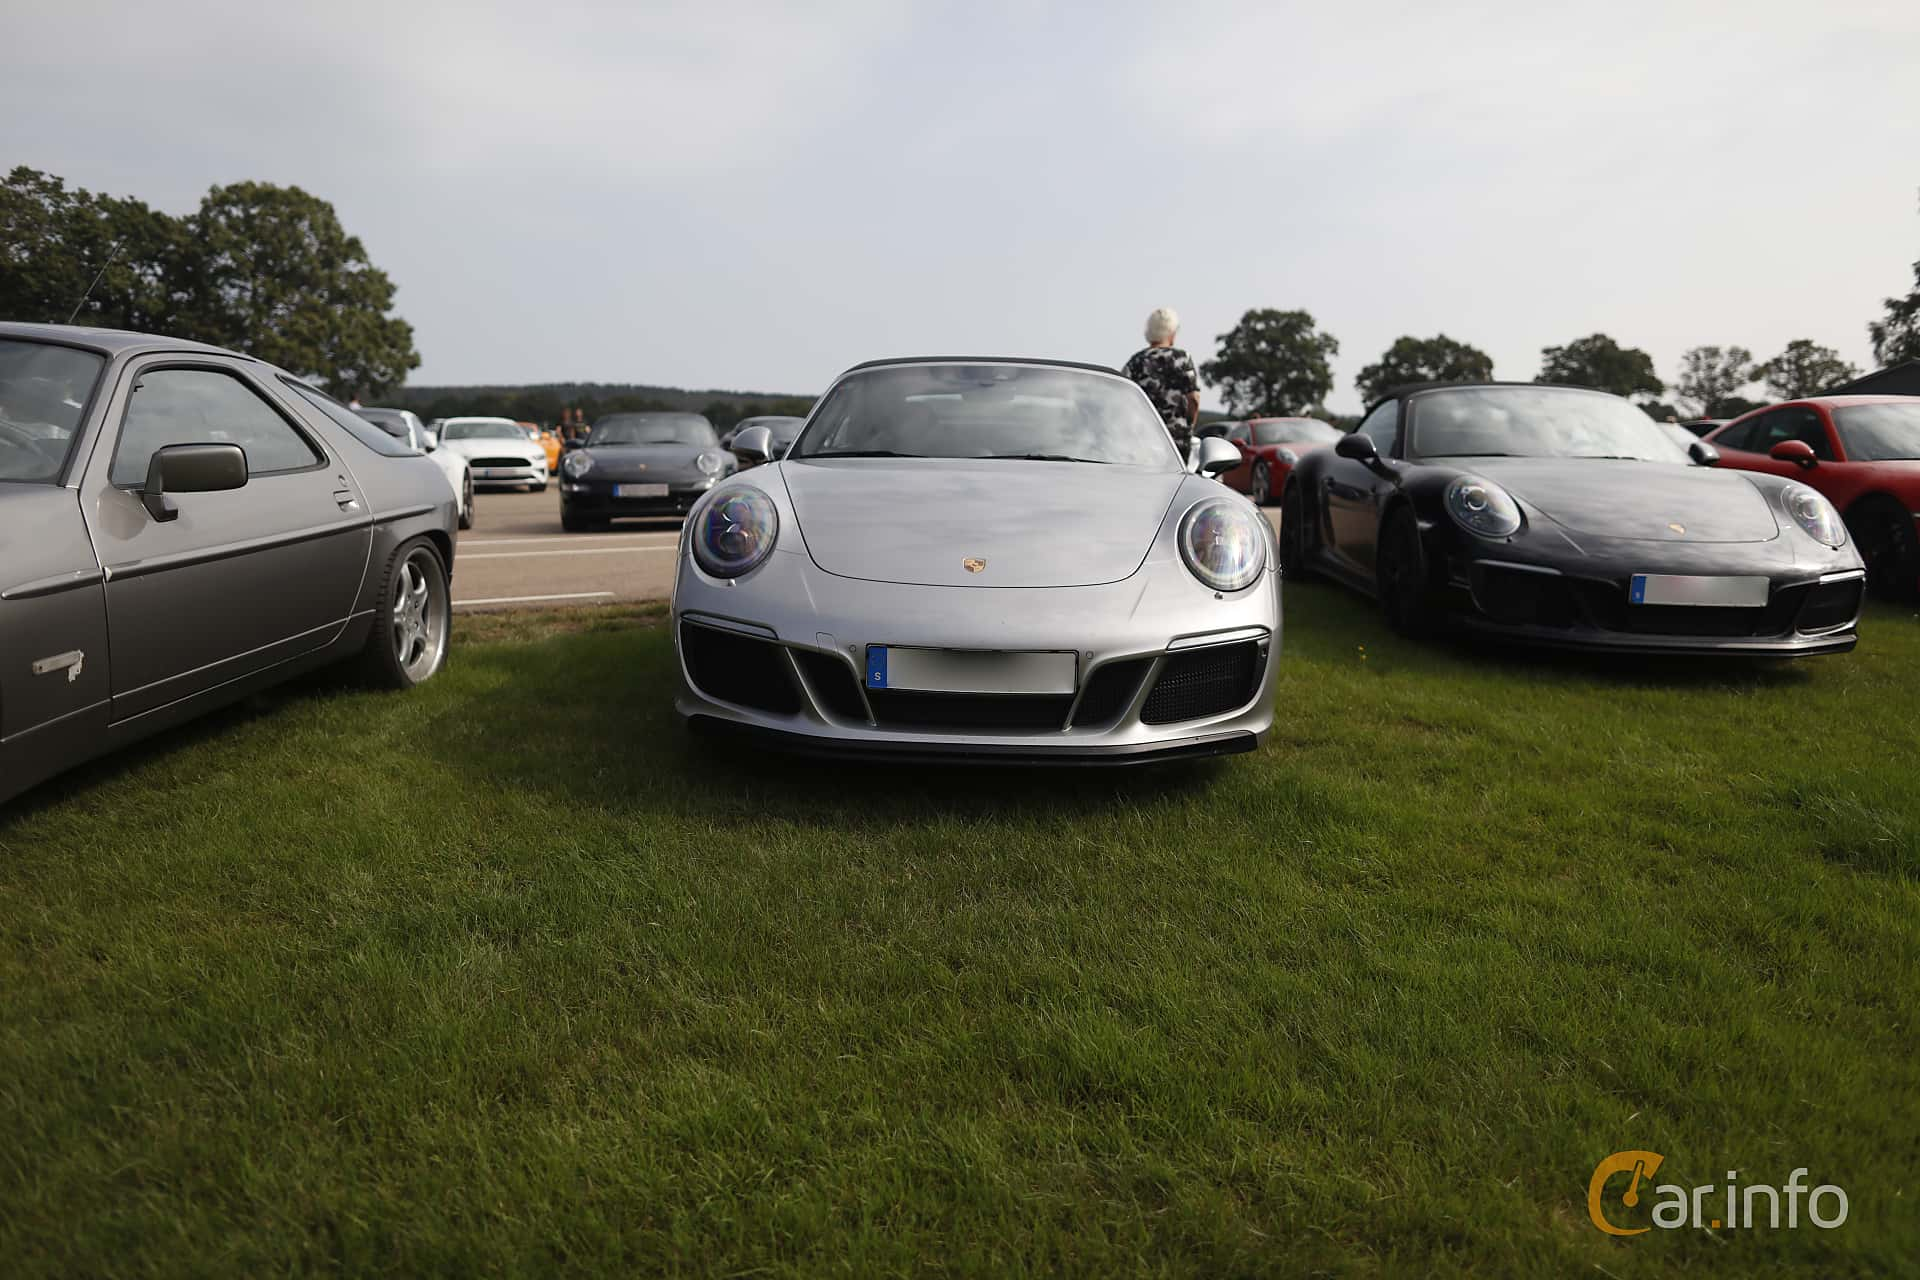 Front  of Porsche 911 Carrera 4 GTS Cabriolet  PDK, 450ps, 2017 at Autoropa Racing day Knutstorp 2019